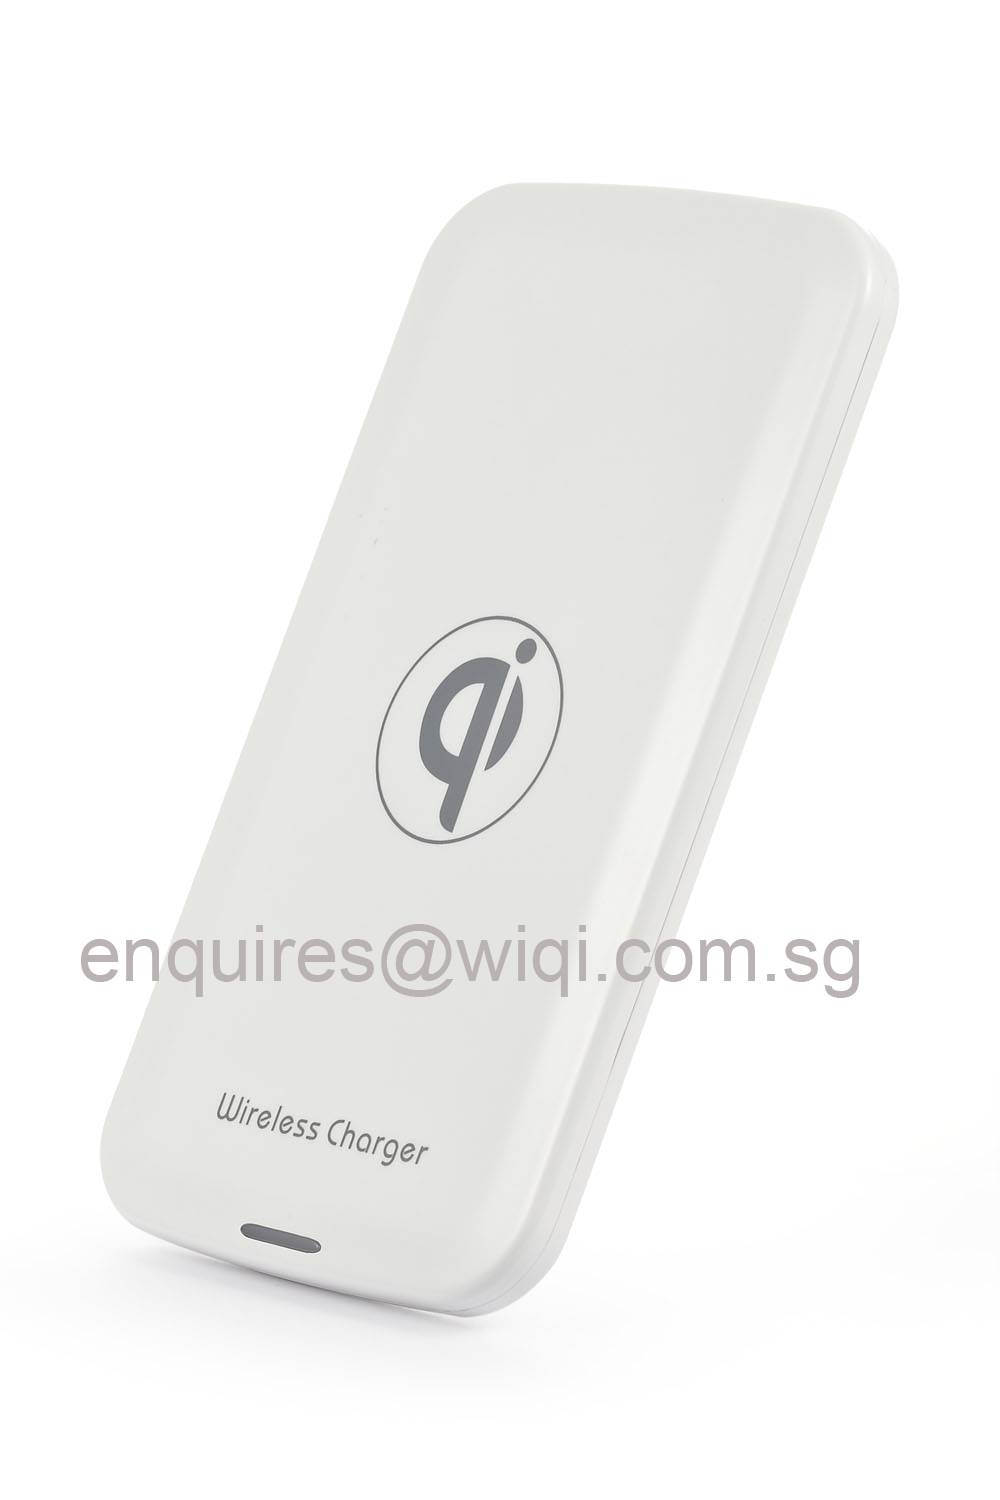 Sumsung Iphone T100 wireless charging plate